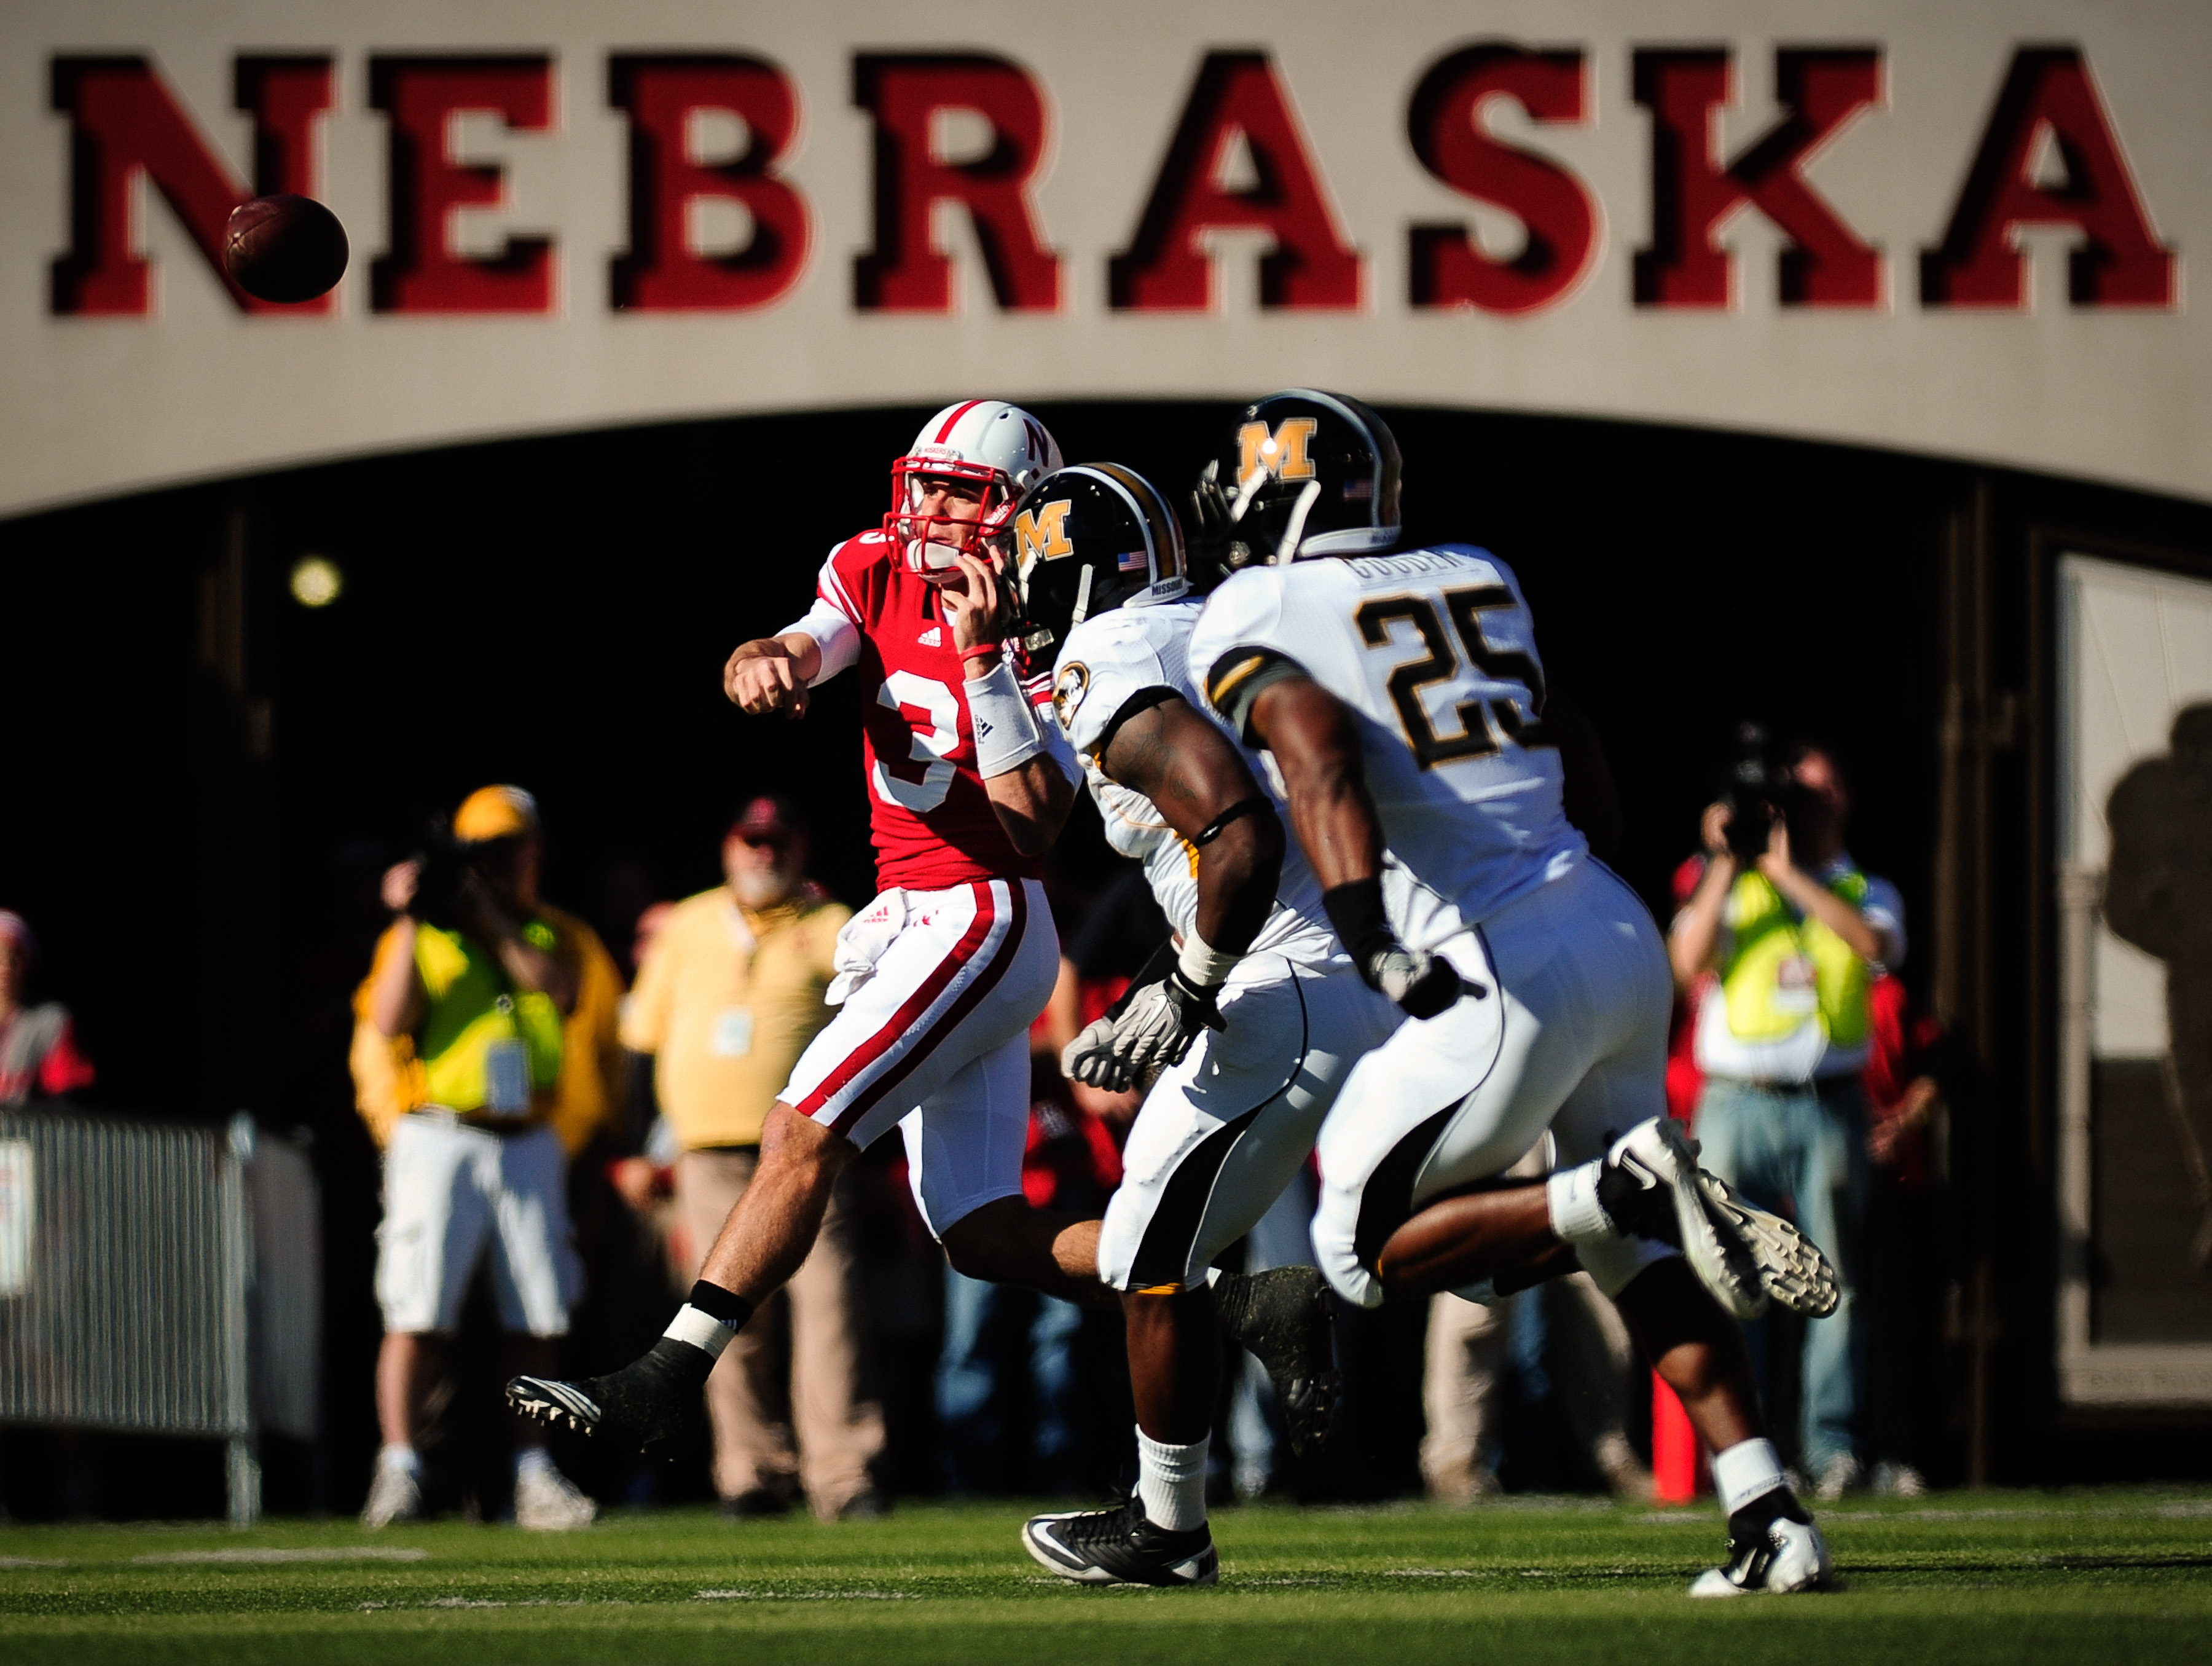 LINCOLN, NE - OCTOBER 30: Quarterback Taylor Martinez #3 of the Nebraska Cornhuskers throws over the Missouri Tigers defense during first half action of their game at Memorial Stadium on October 30, 2010 in Lincoln, Nebraska. Nebraska Defeated Missouri 31